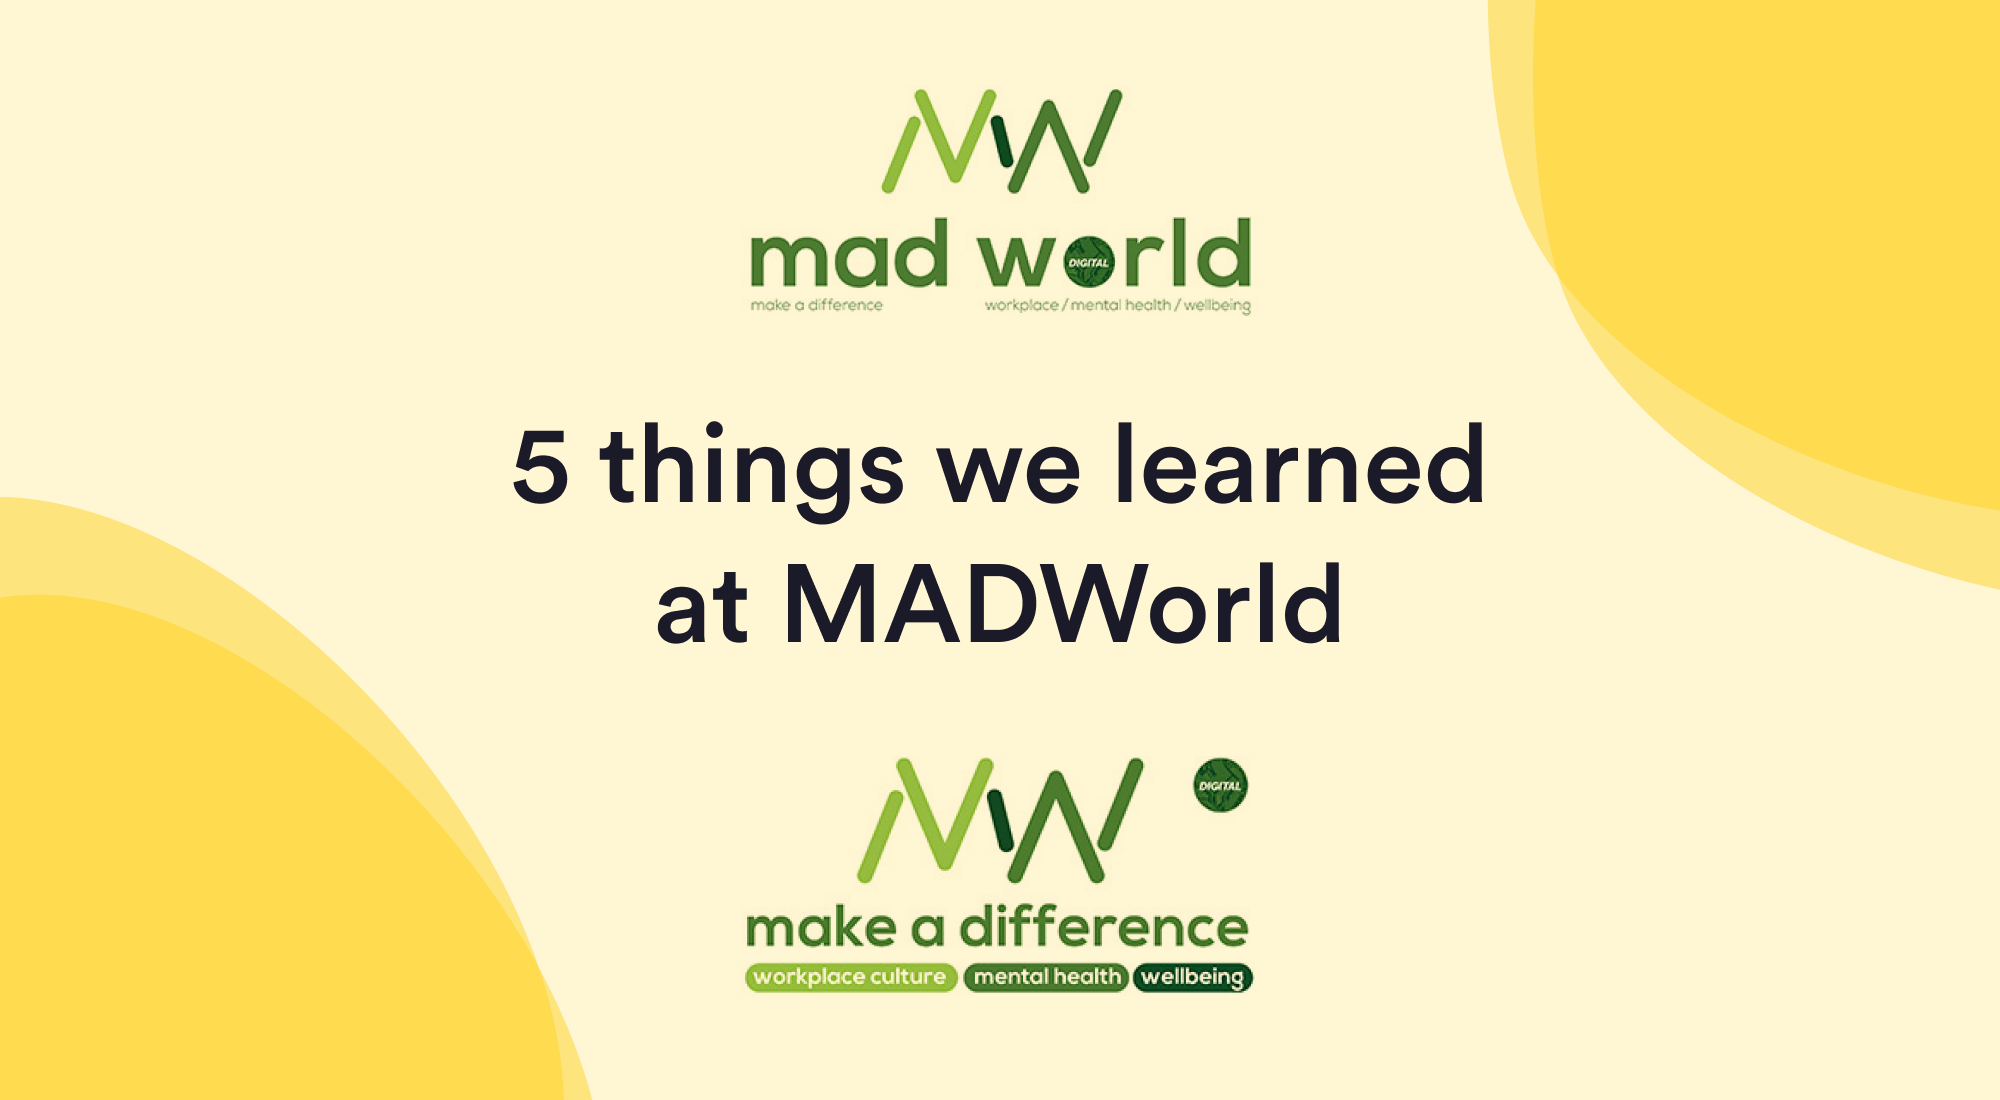 5 things we learned at MADWorld London and New York